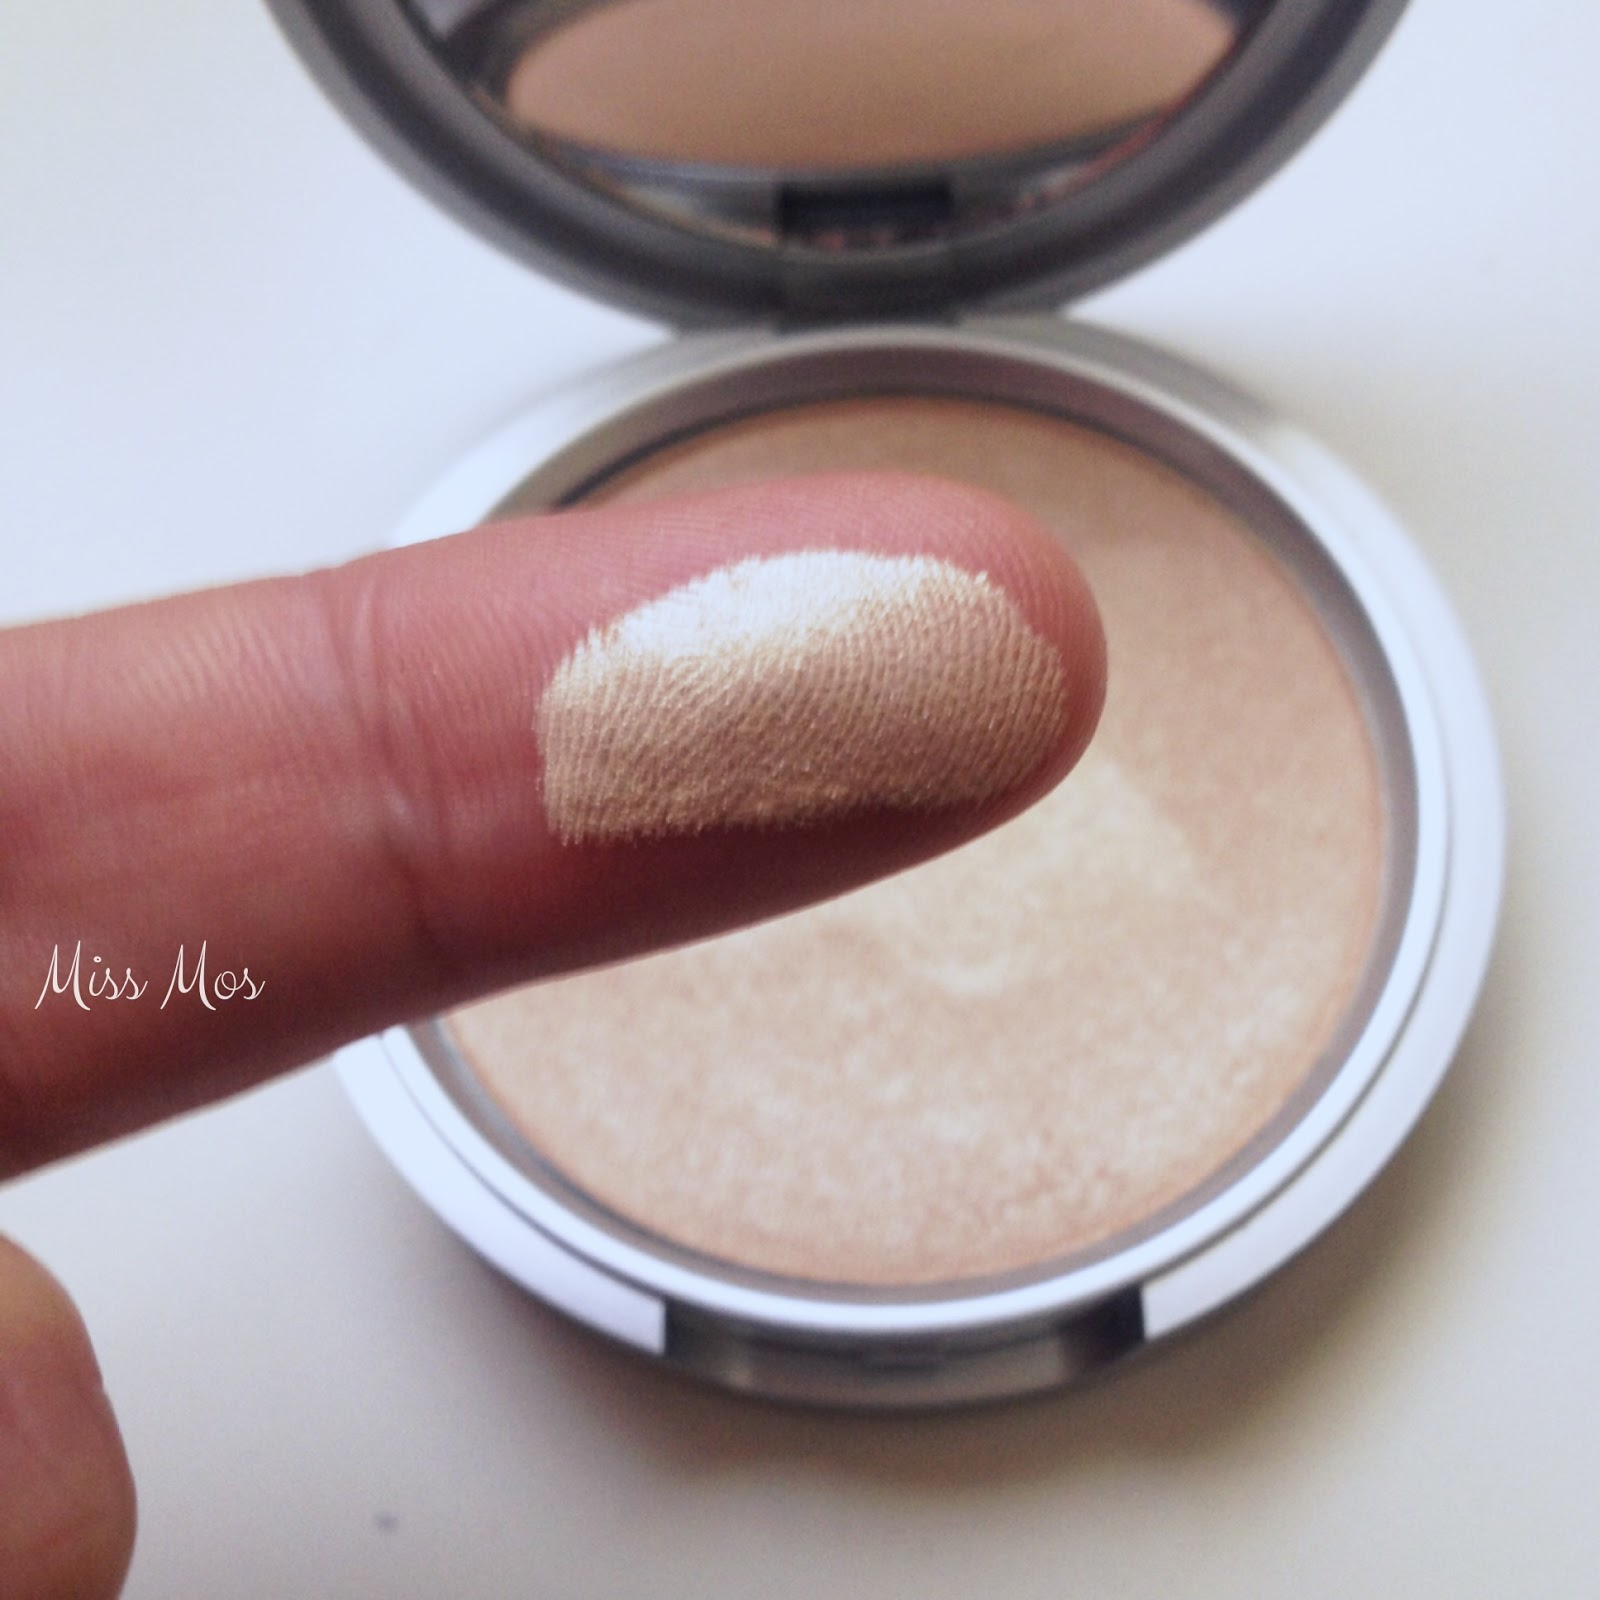 Mary-Lou Manizer The Balm